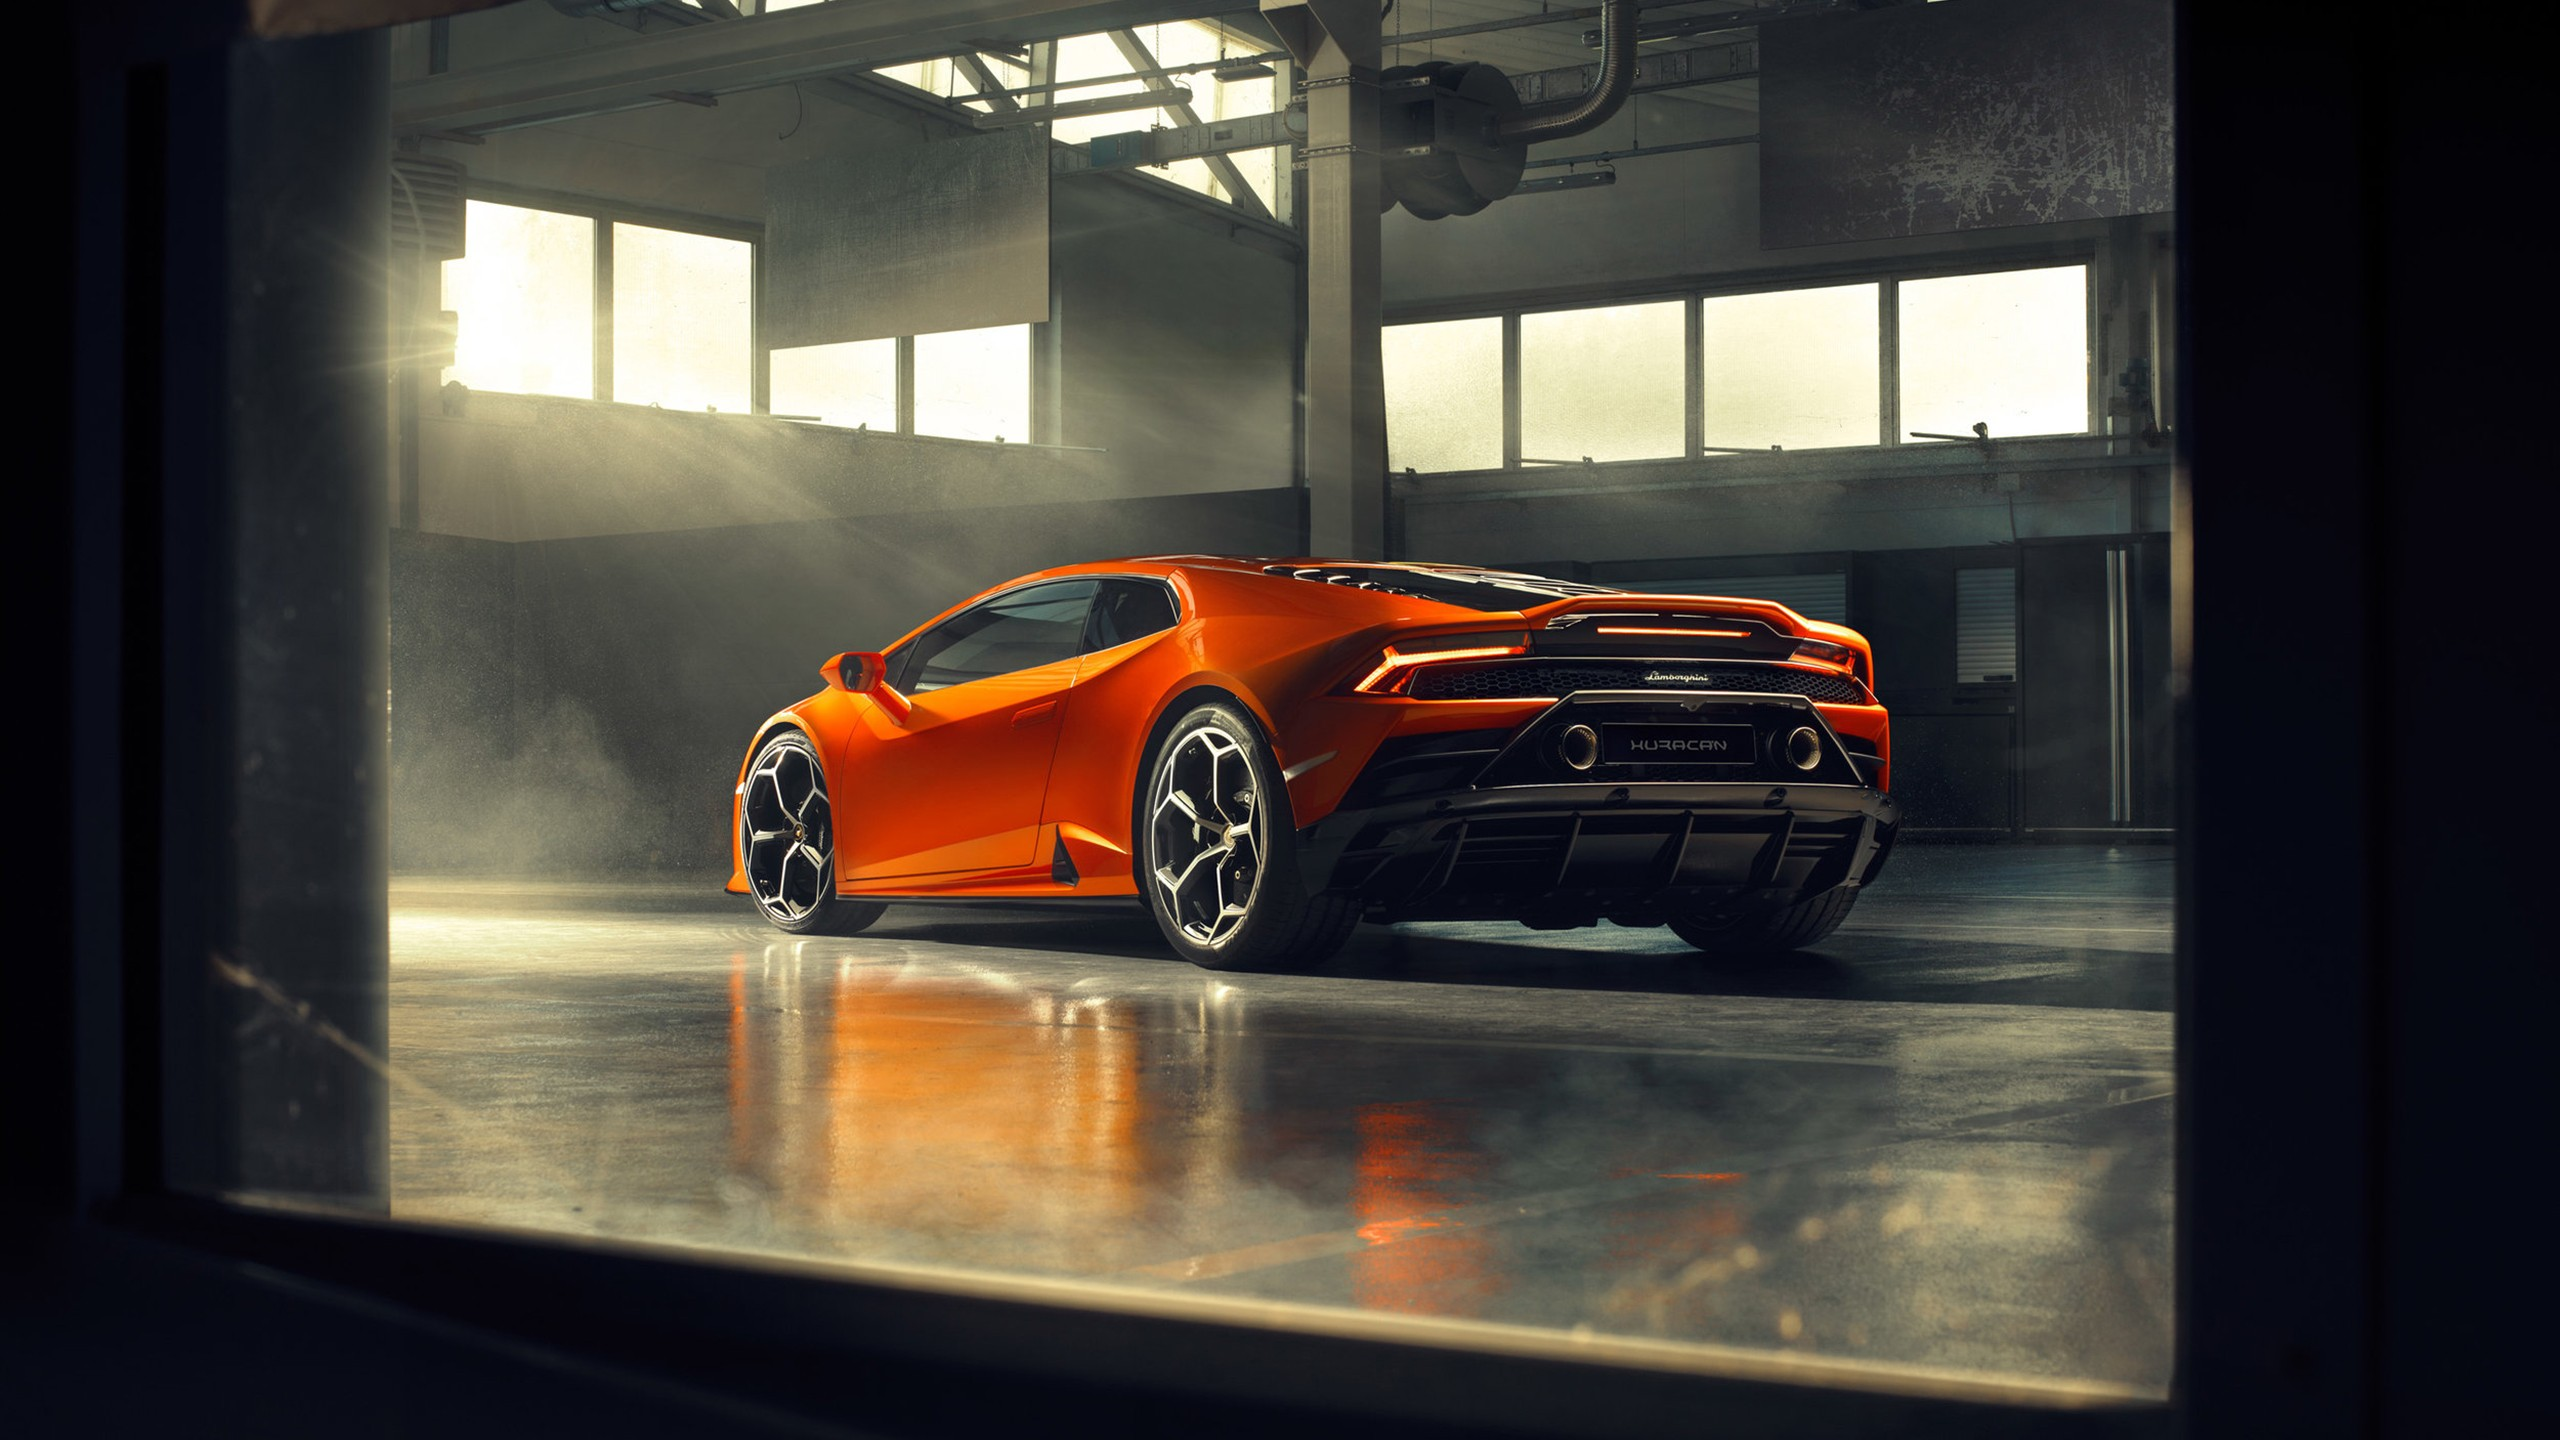 Download Car Wallpapers For Android Lamborghini Huracan Evo 2019 4k 2 Wallpaper Hd Car